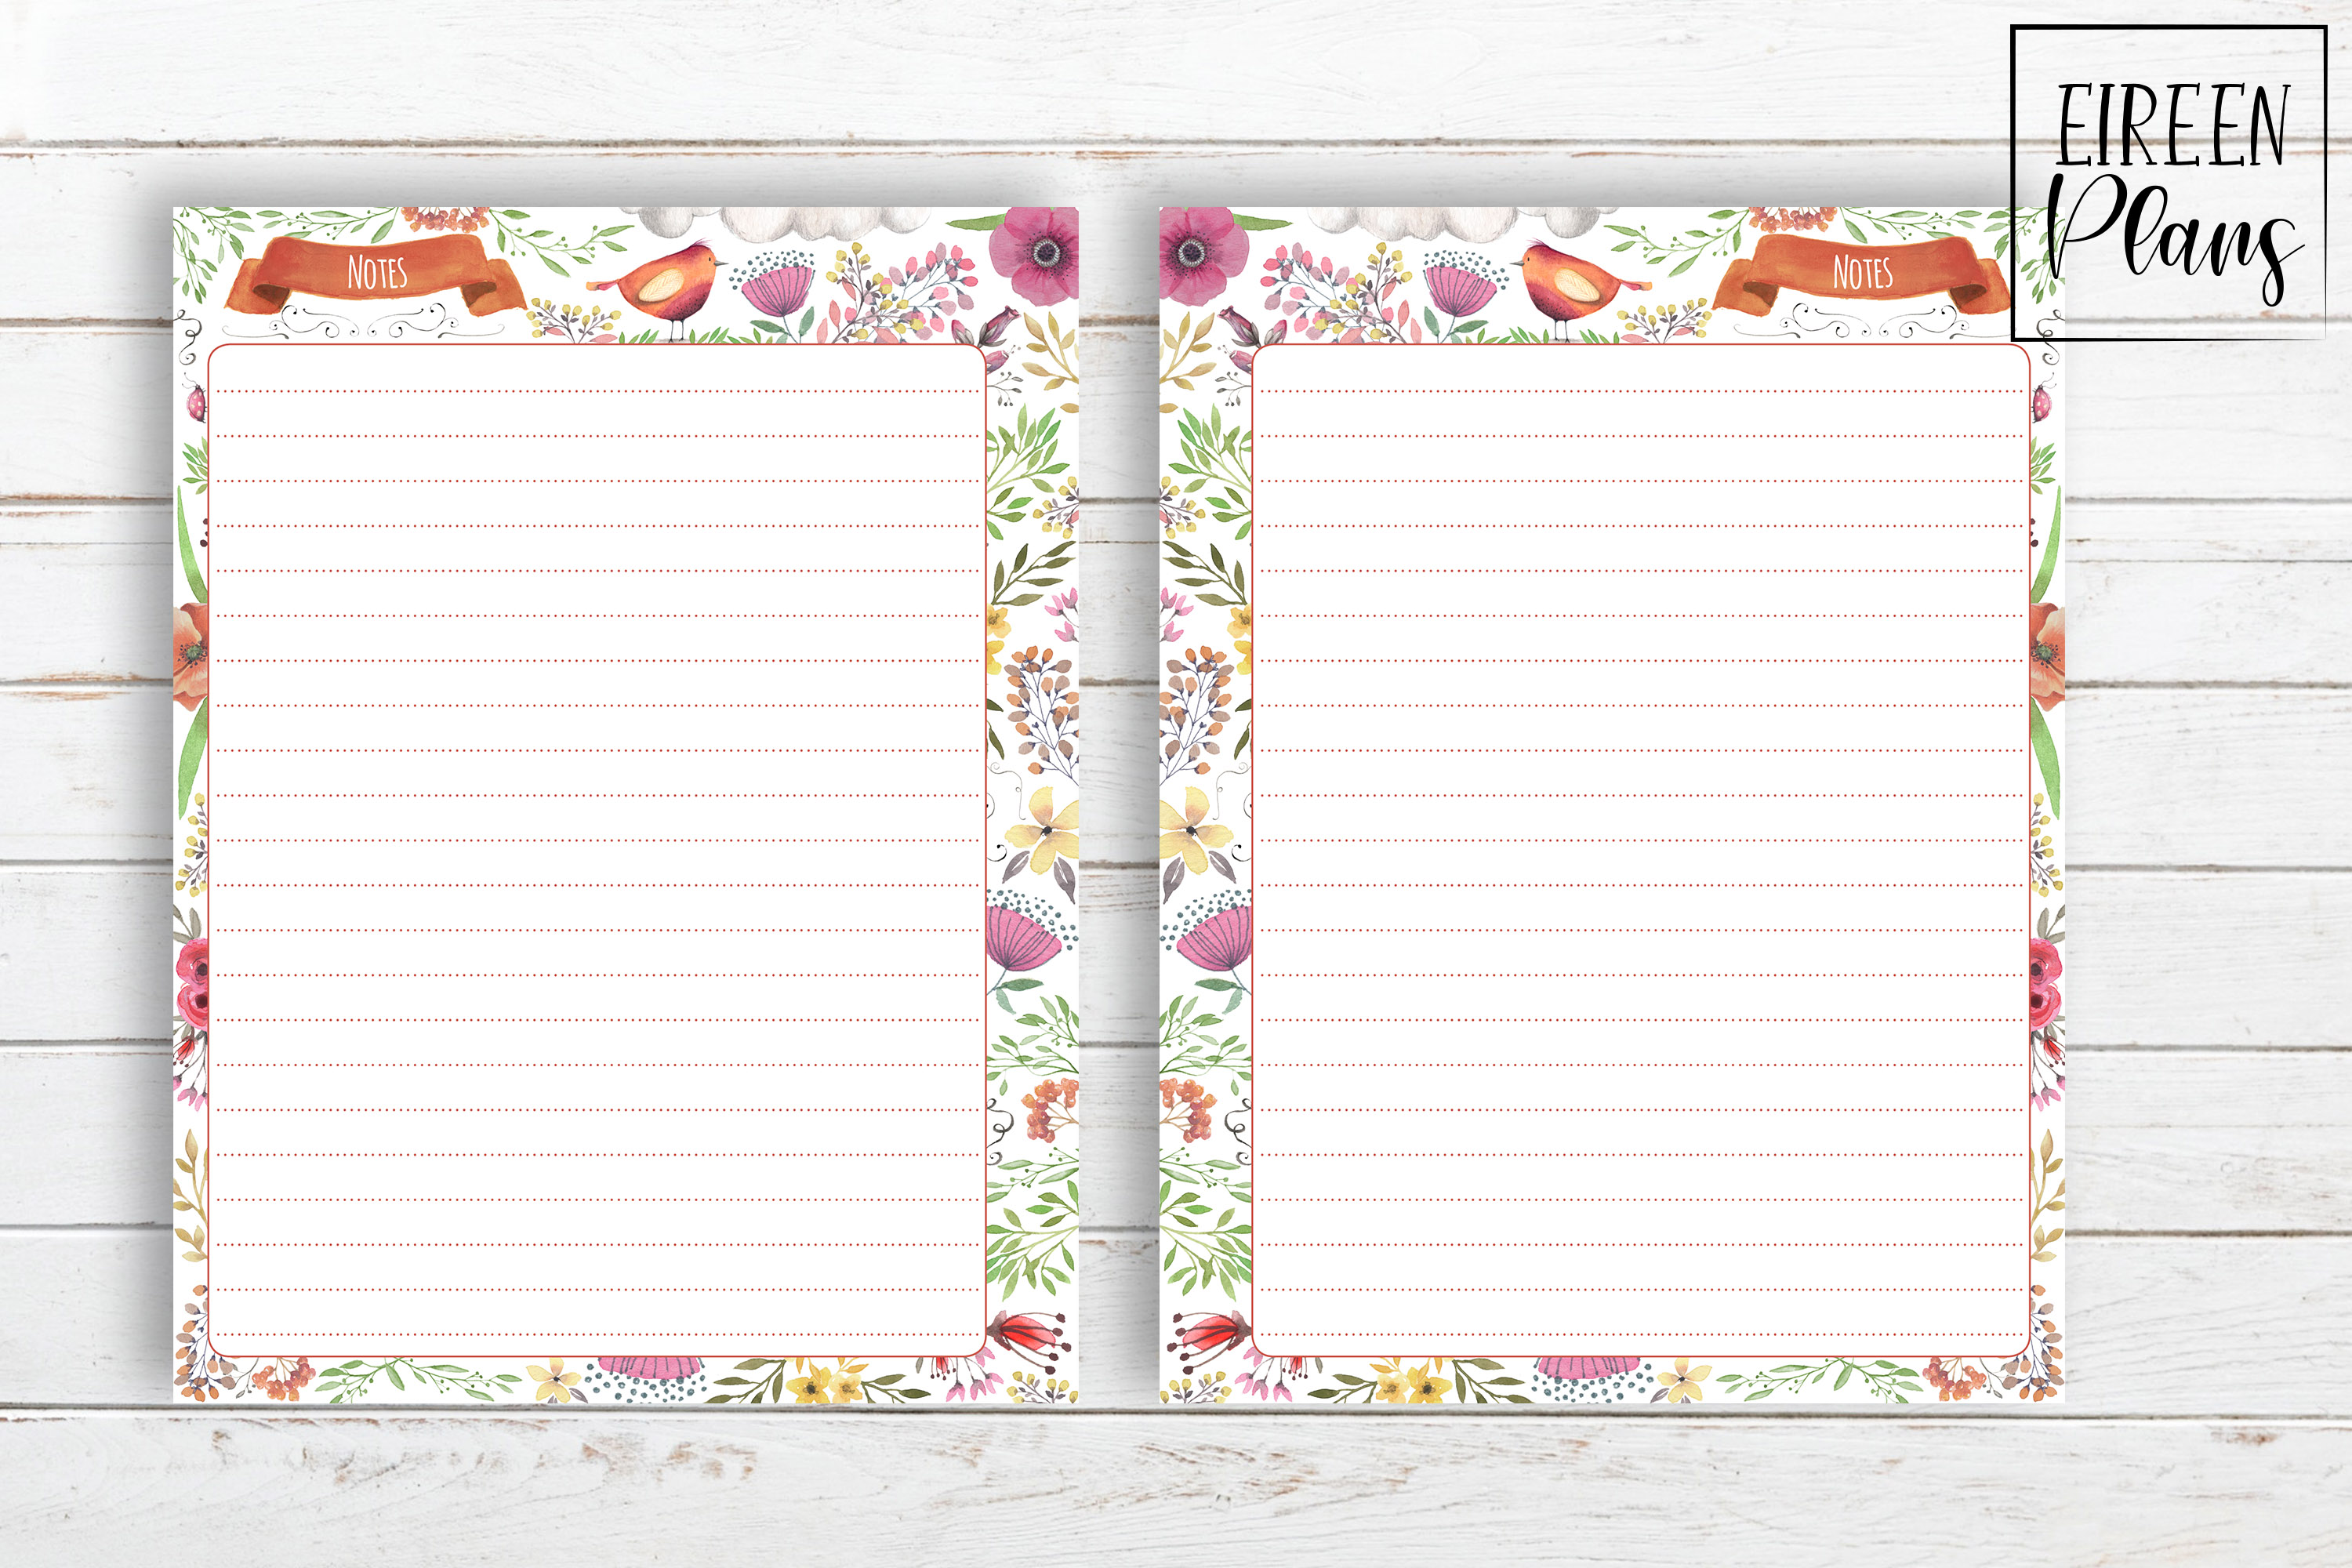 Notes Printable for Classic Happy Planner example image 2